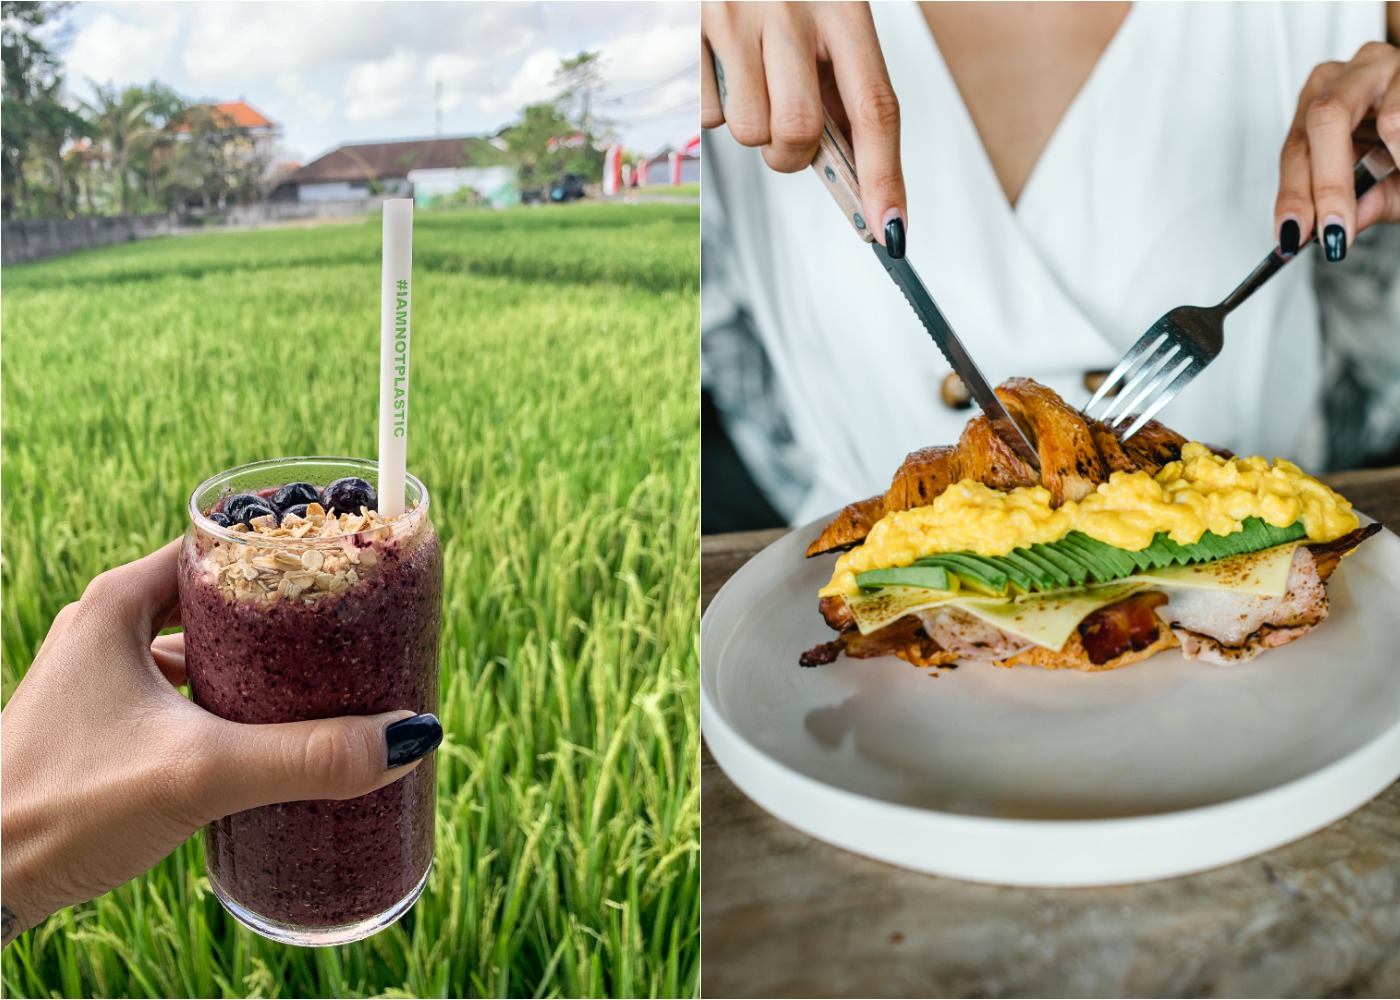 The Avocado Factory brunch with views of Canggu's rice fields in Bali, Indonesia